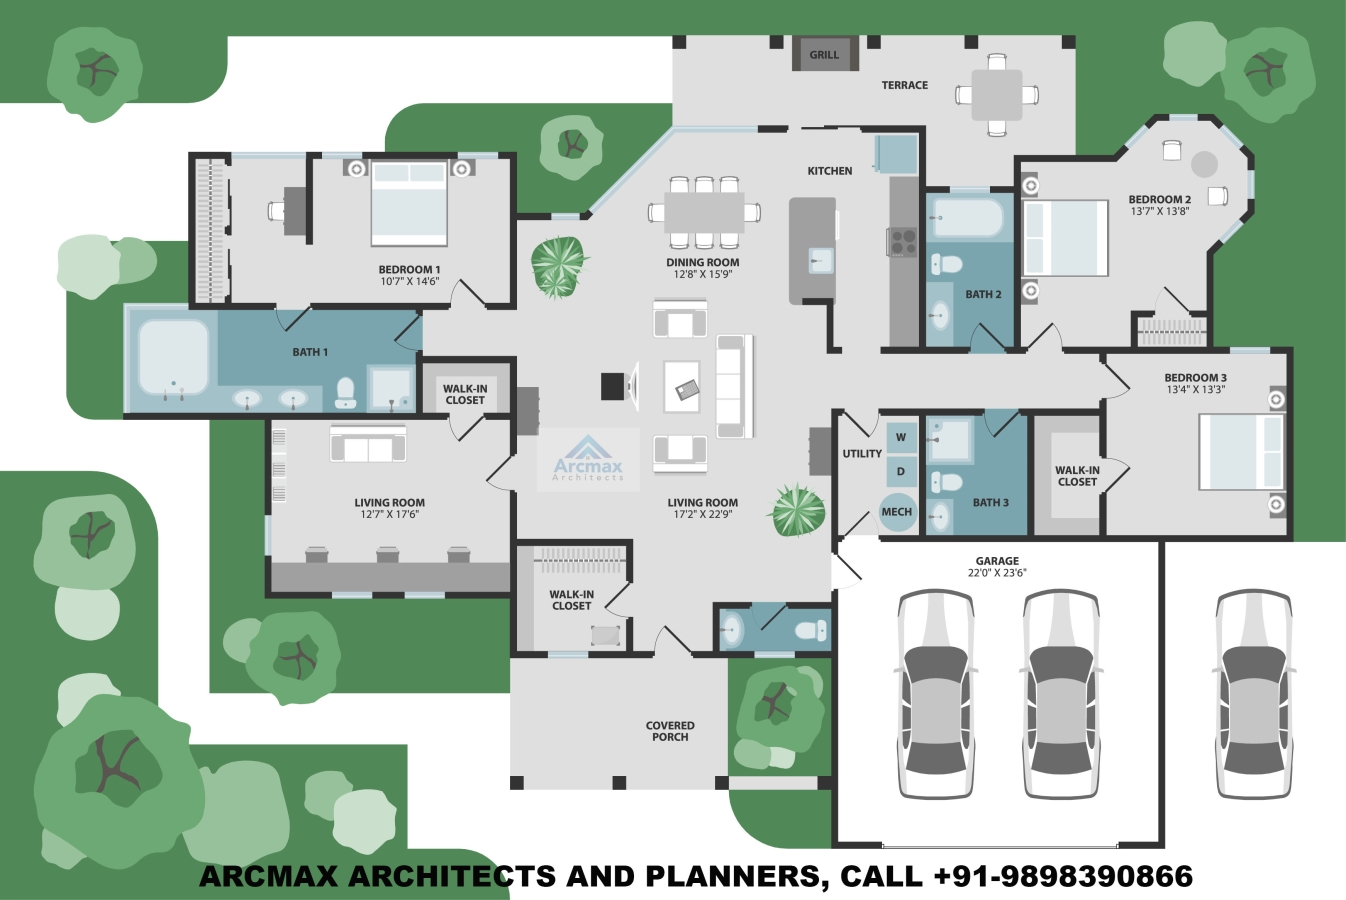 best architect for row house plans and group housing design in india